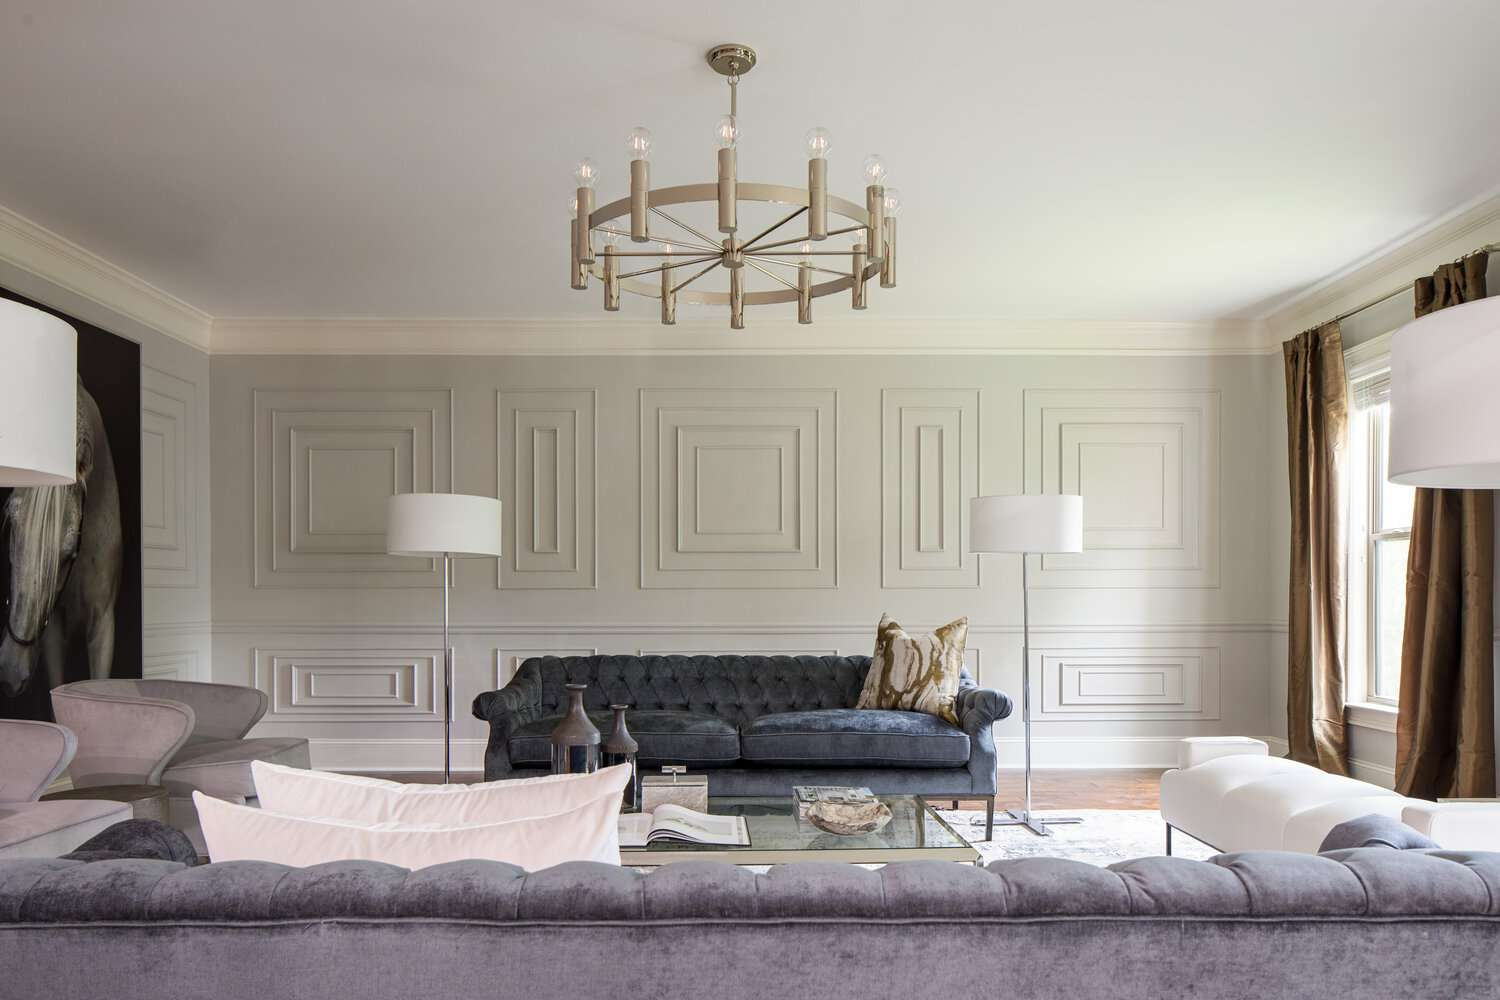 Chic, transitional living room with overhead lighting, natural light, and lamps